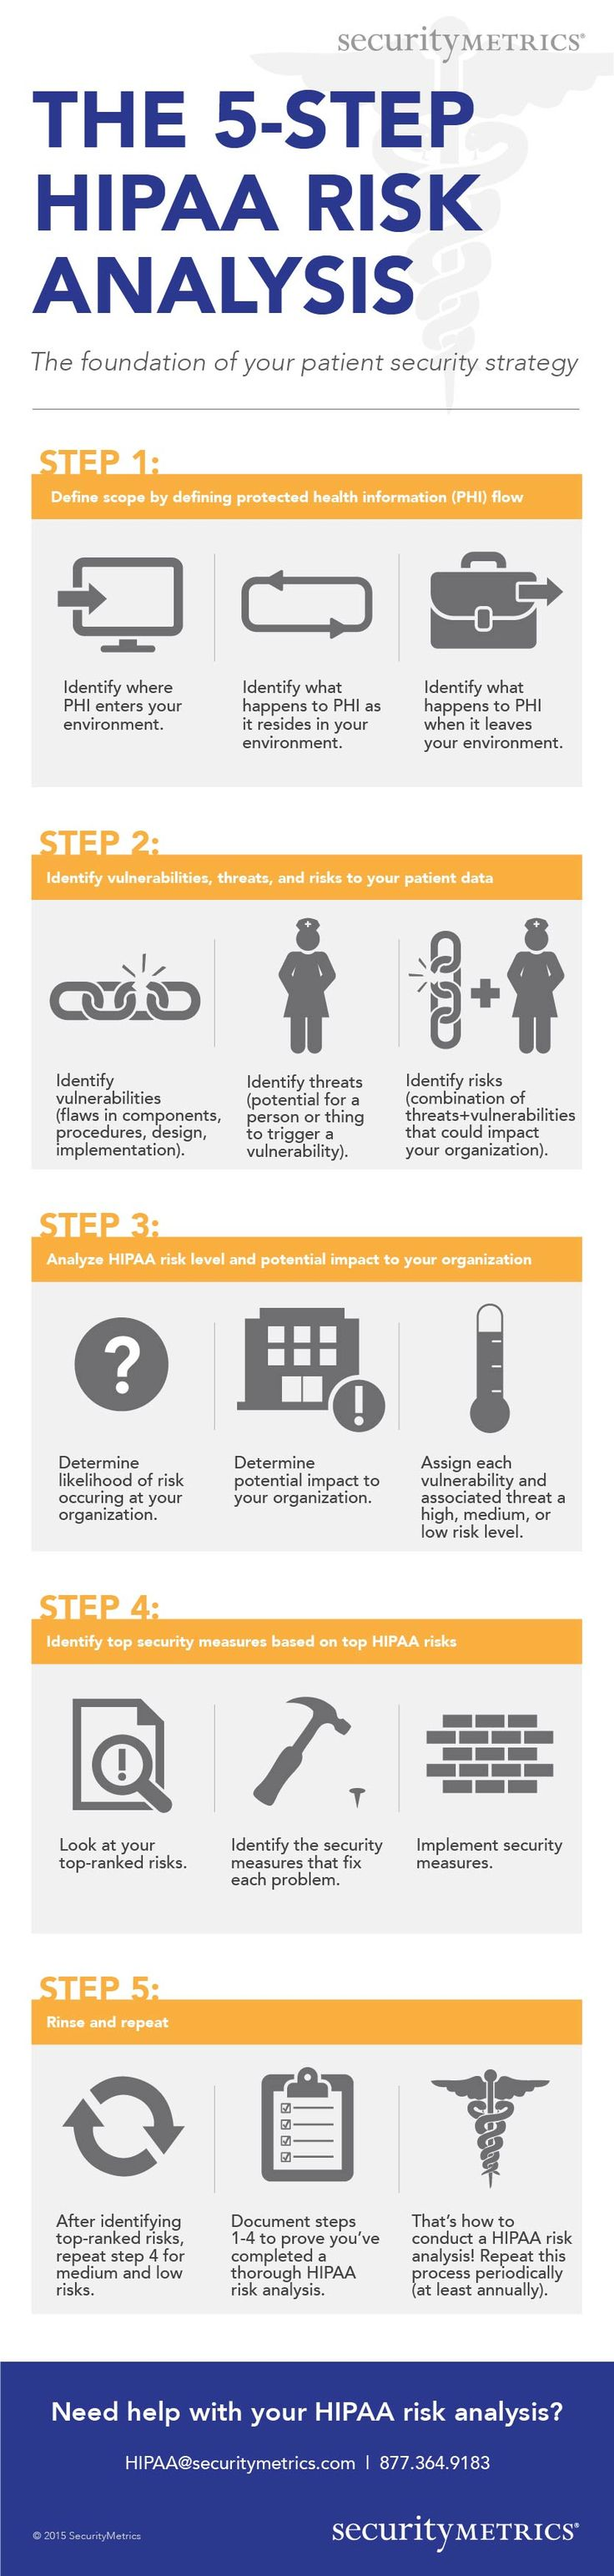 5 Step HIPAA Risk Analysis Checklist